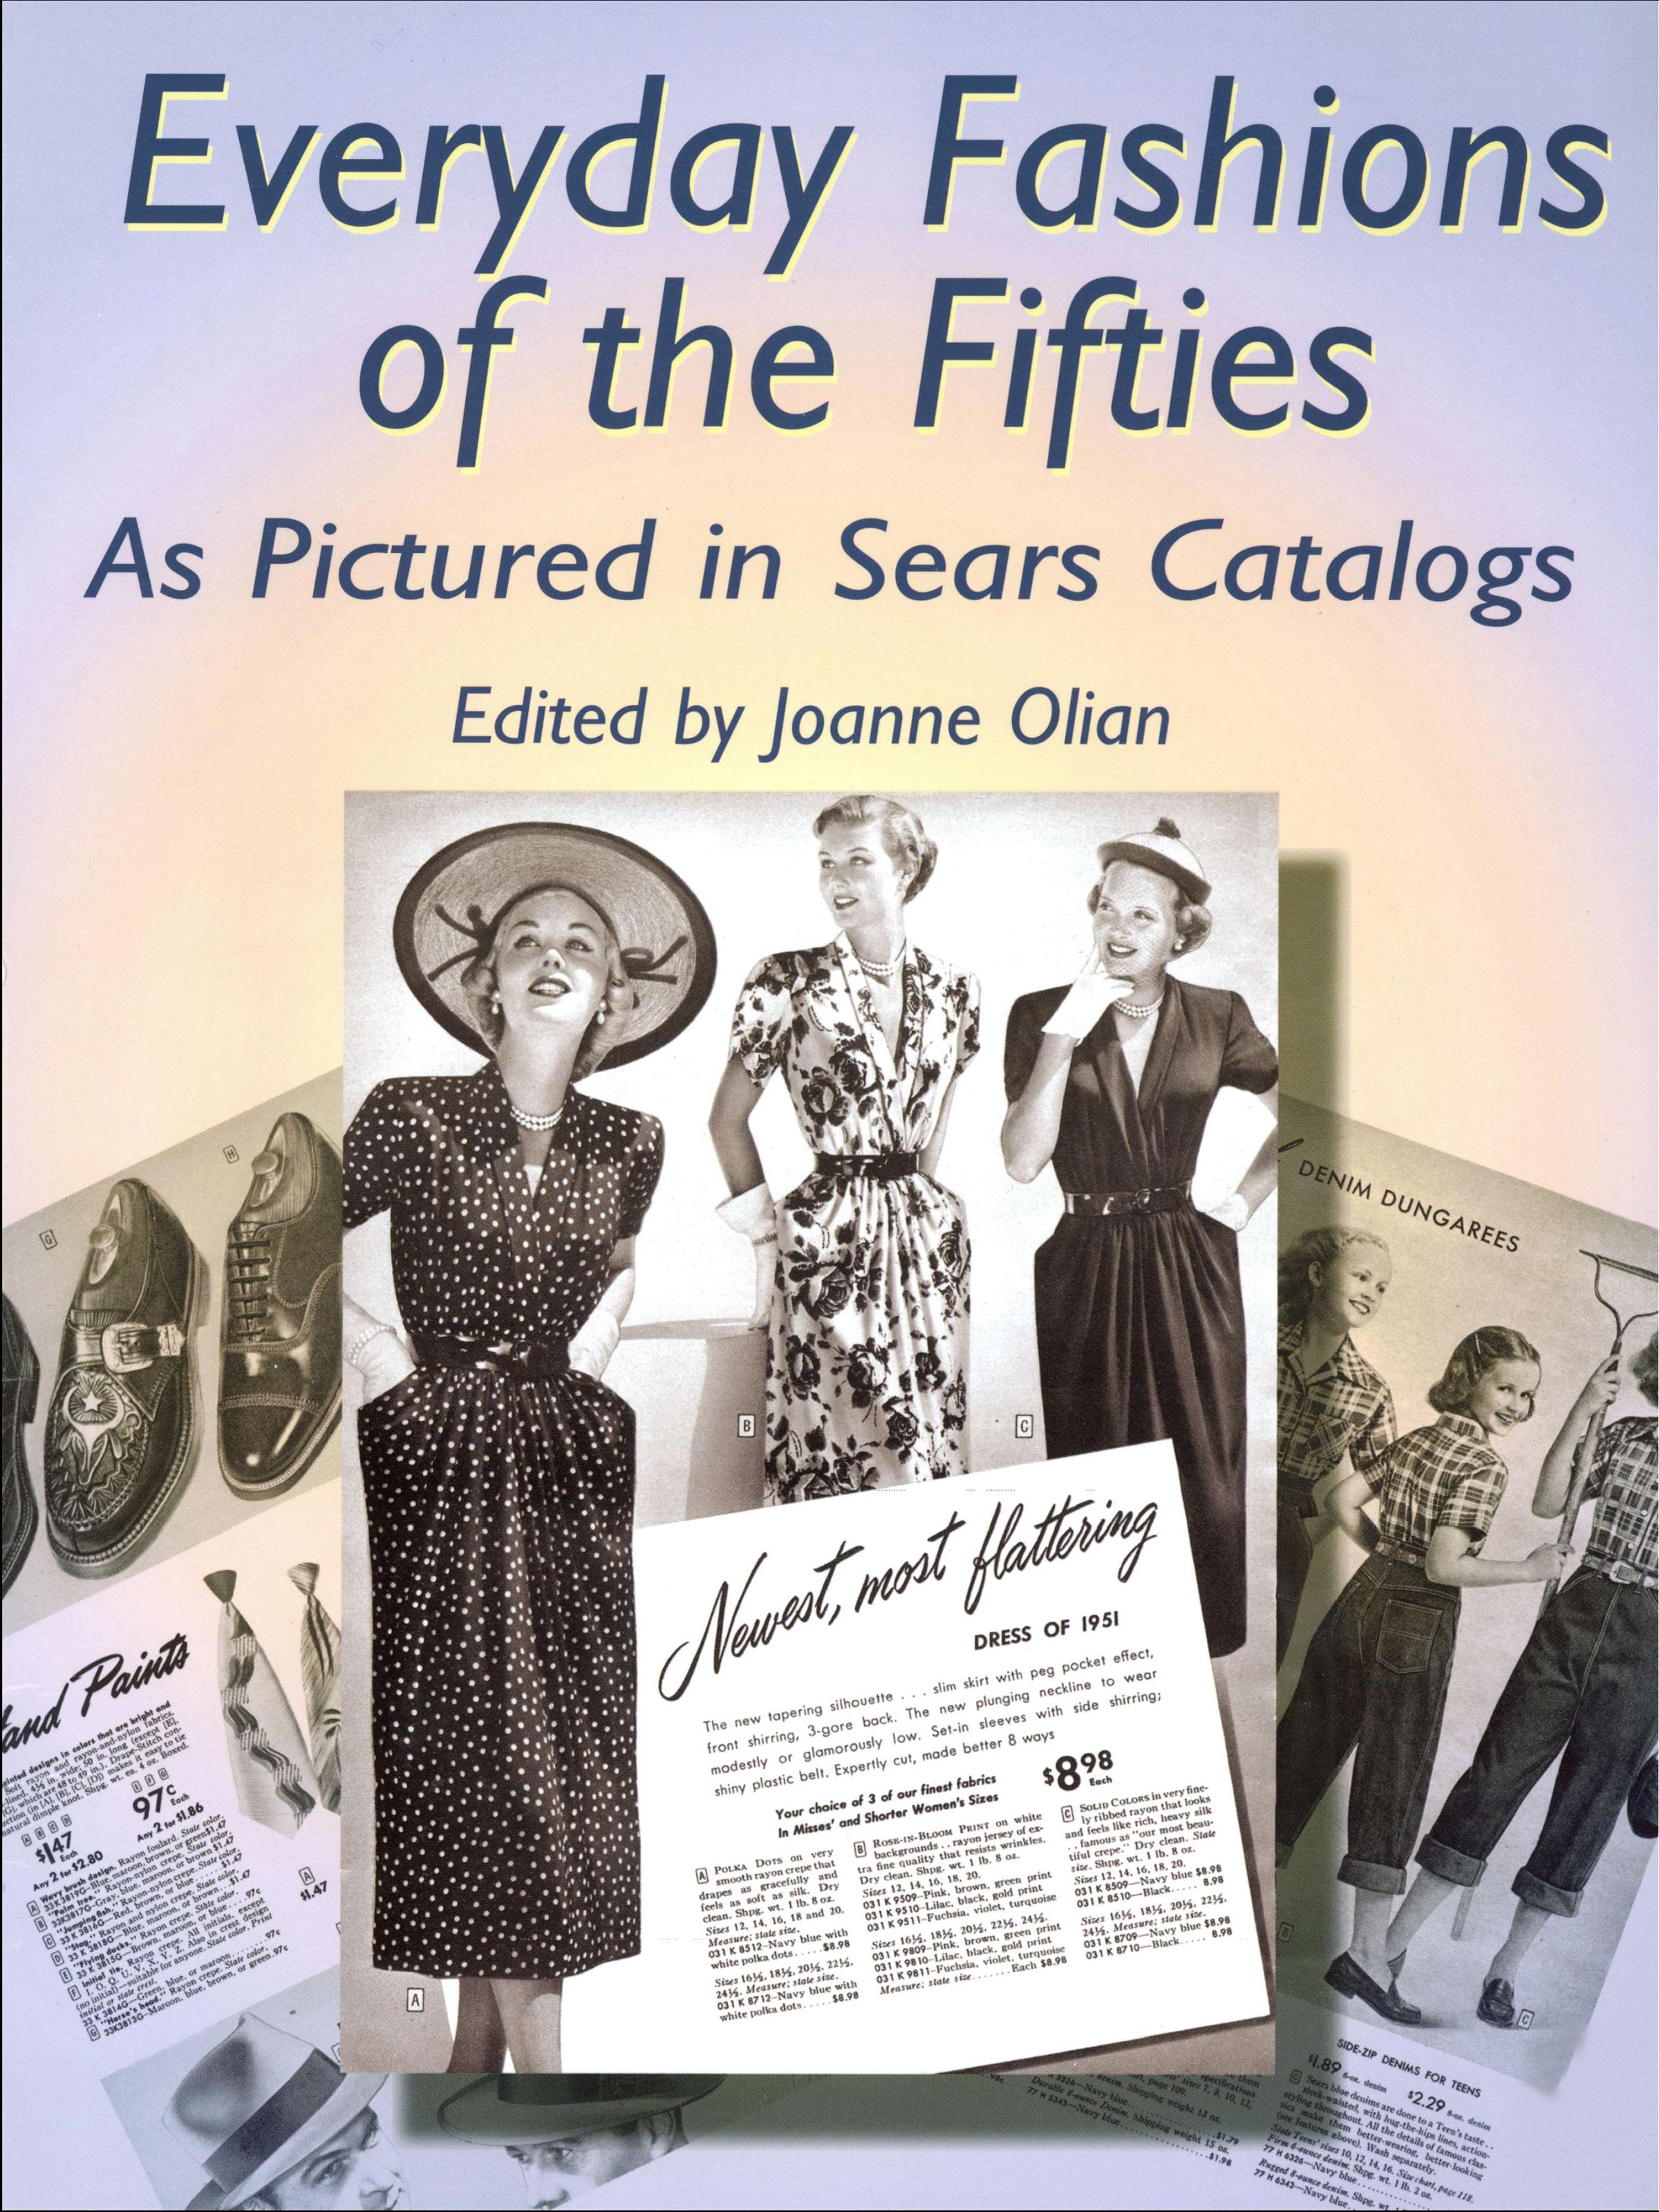 Fashionable Clothing from the Sears Catalogs: Early 1940s (Schiffer) 1940s book catalog clothing collector early fashionable from schiffer sears